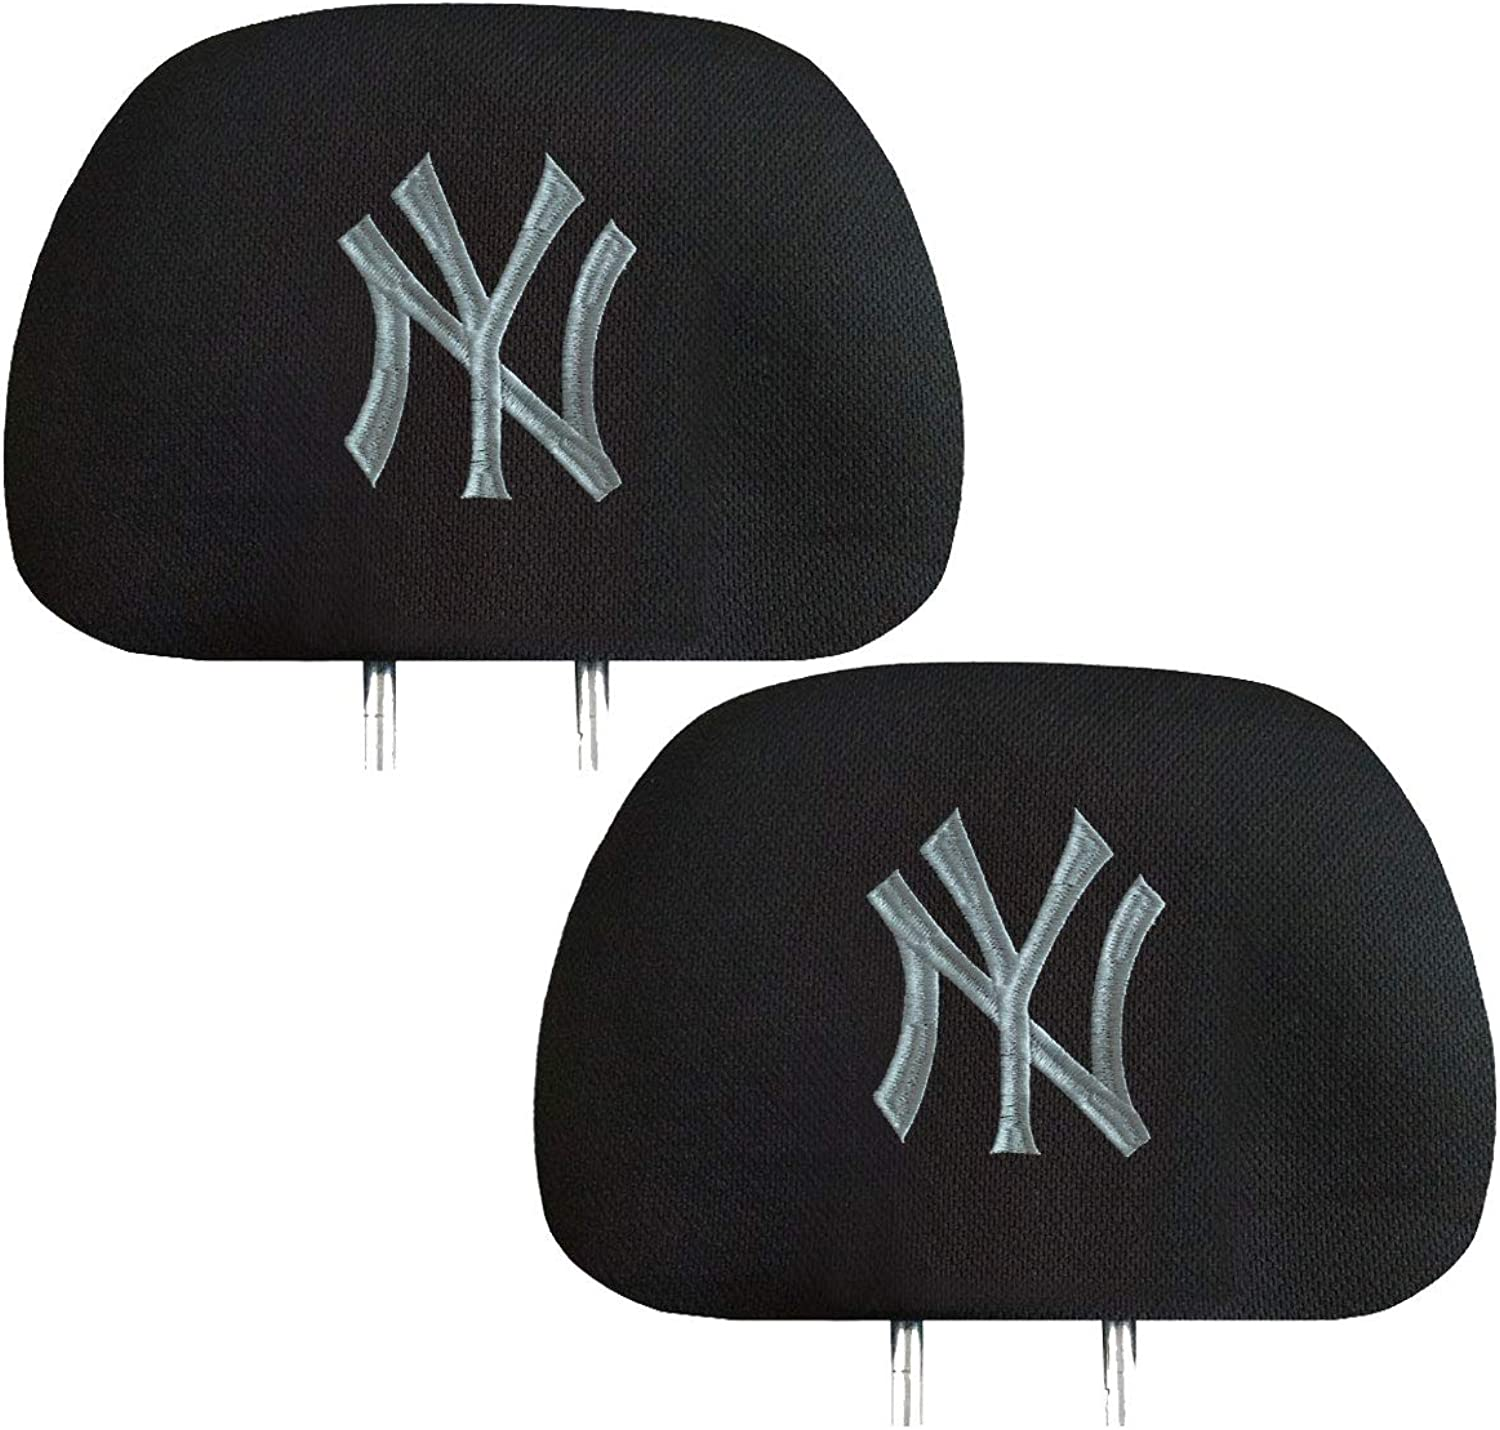 Authentic Car Truck Auto MLB Headrest Cover